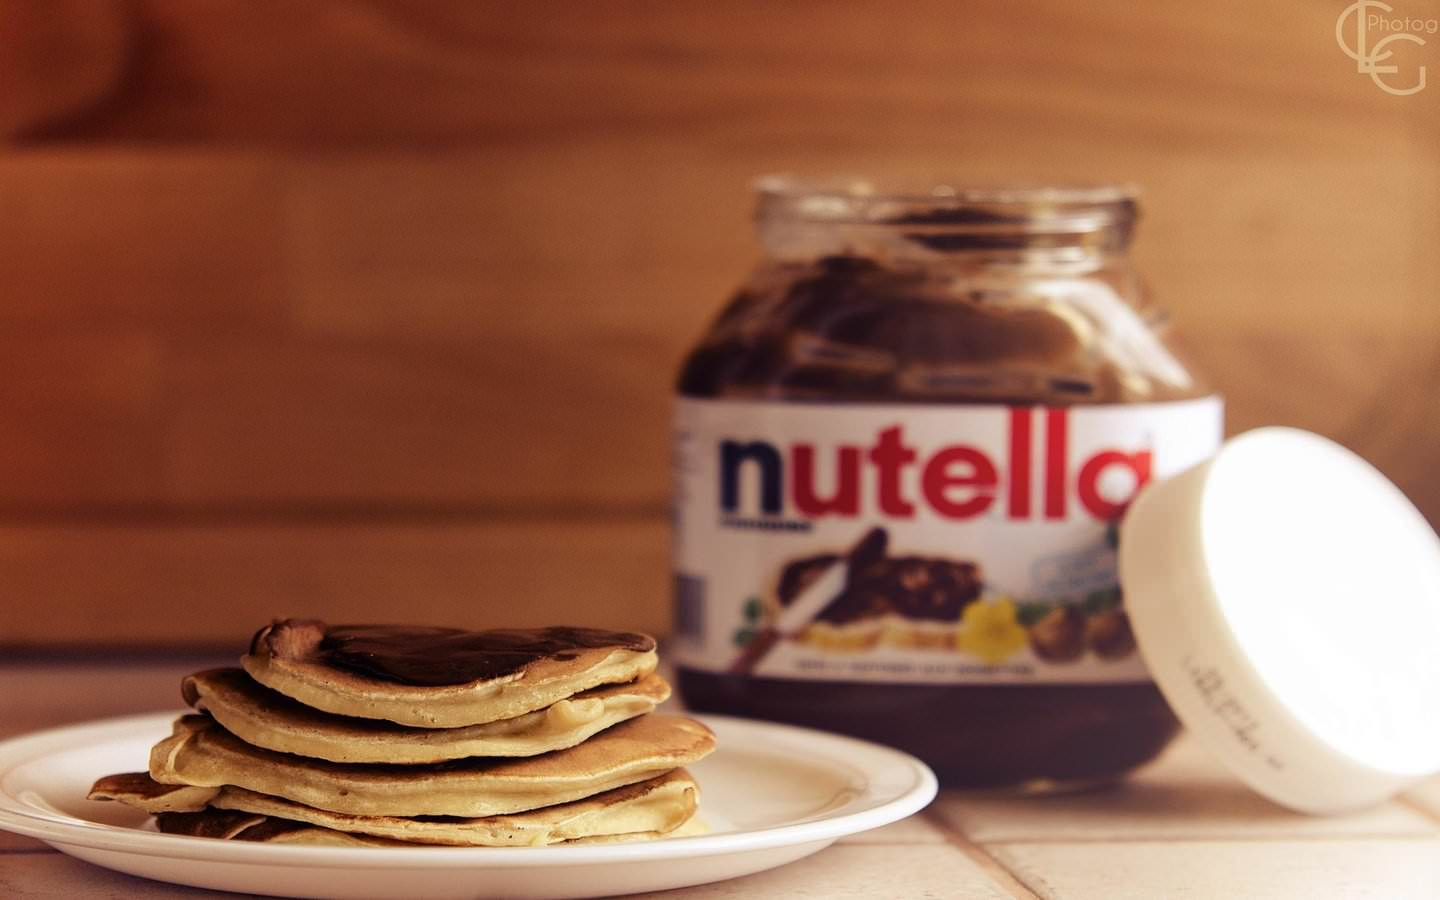 Pancakes and Nutella   Chocolate Wallpaper 38809398 1440x900